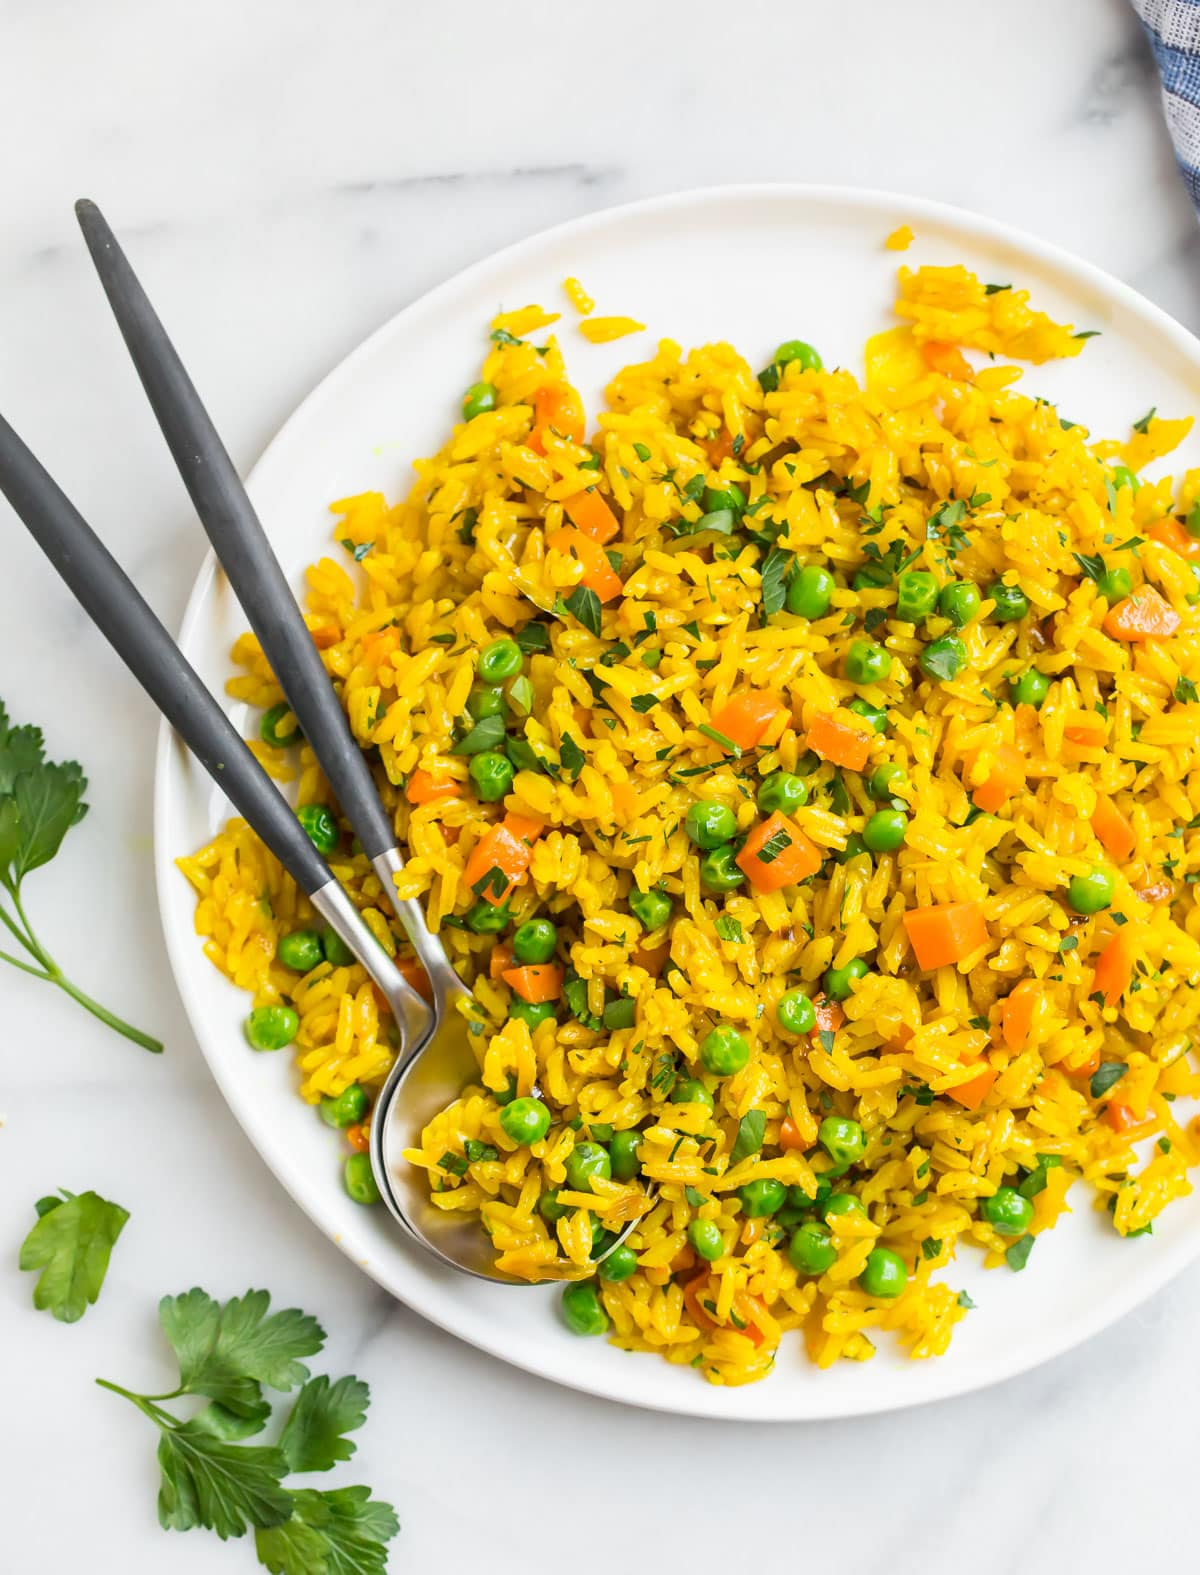 A plate of turmeric rice with vegetables